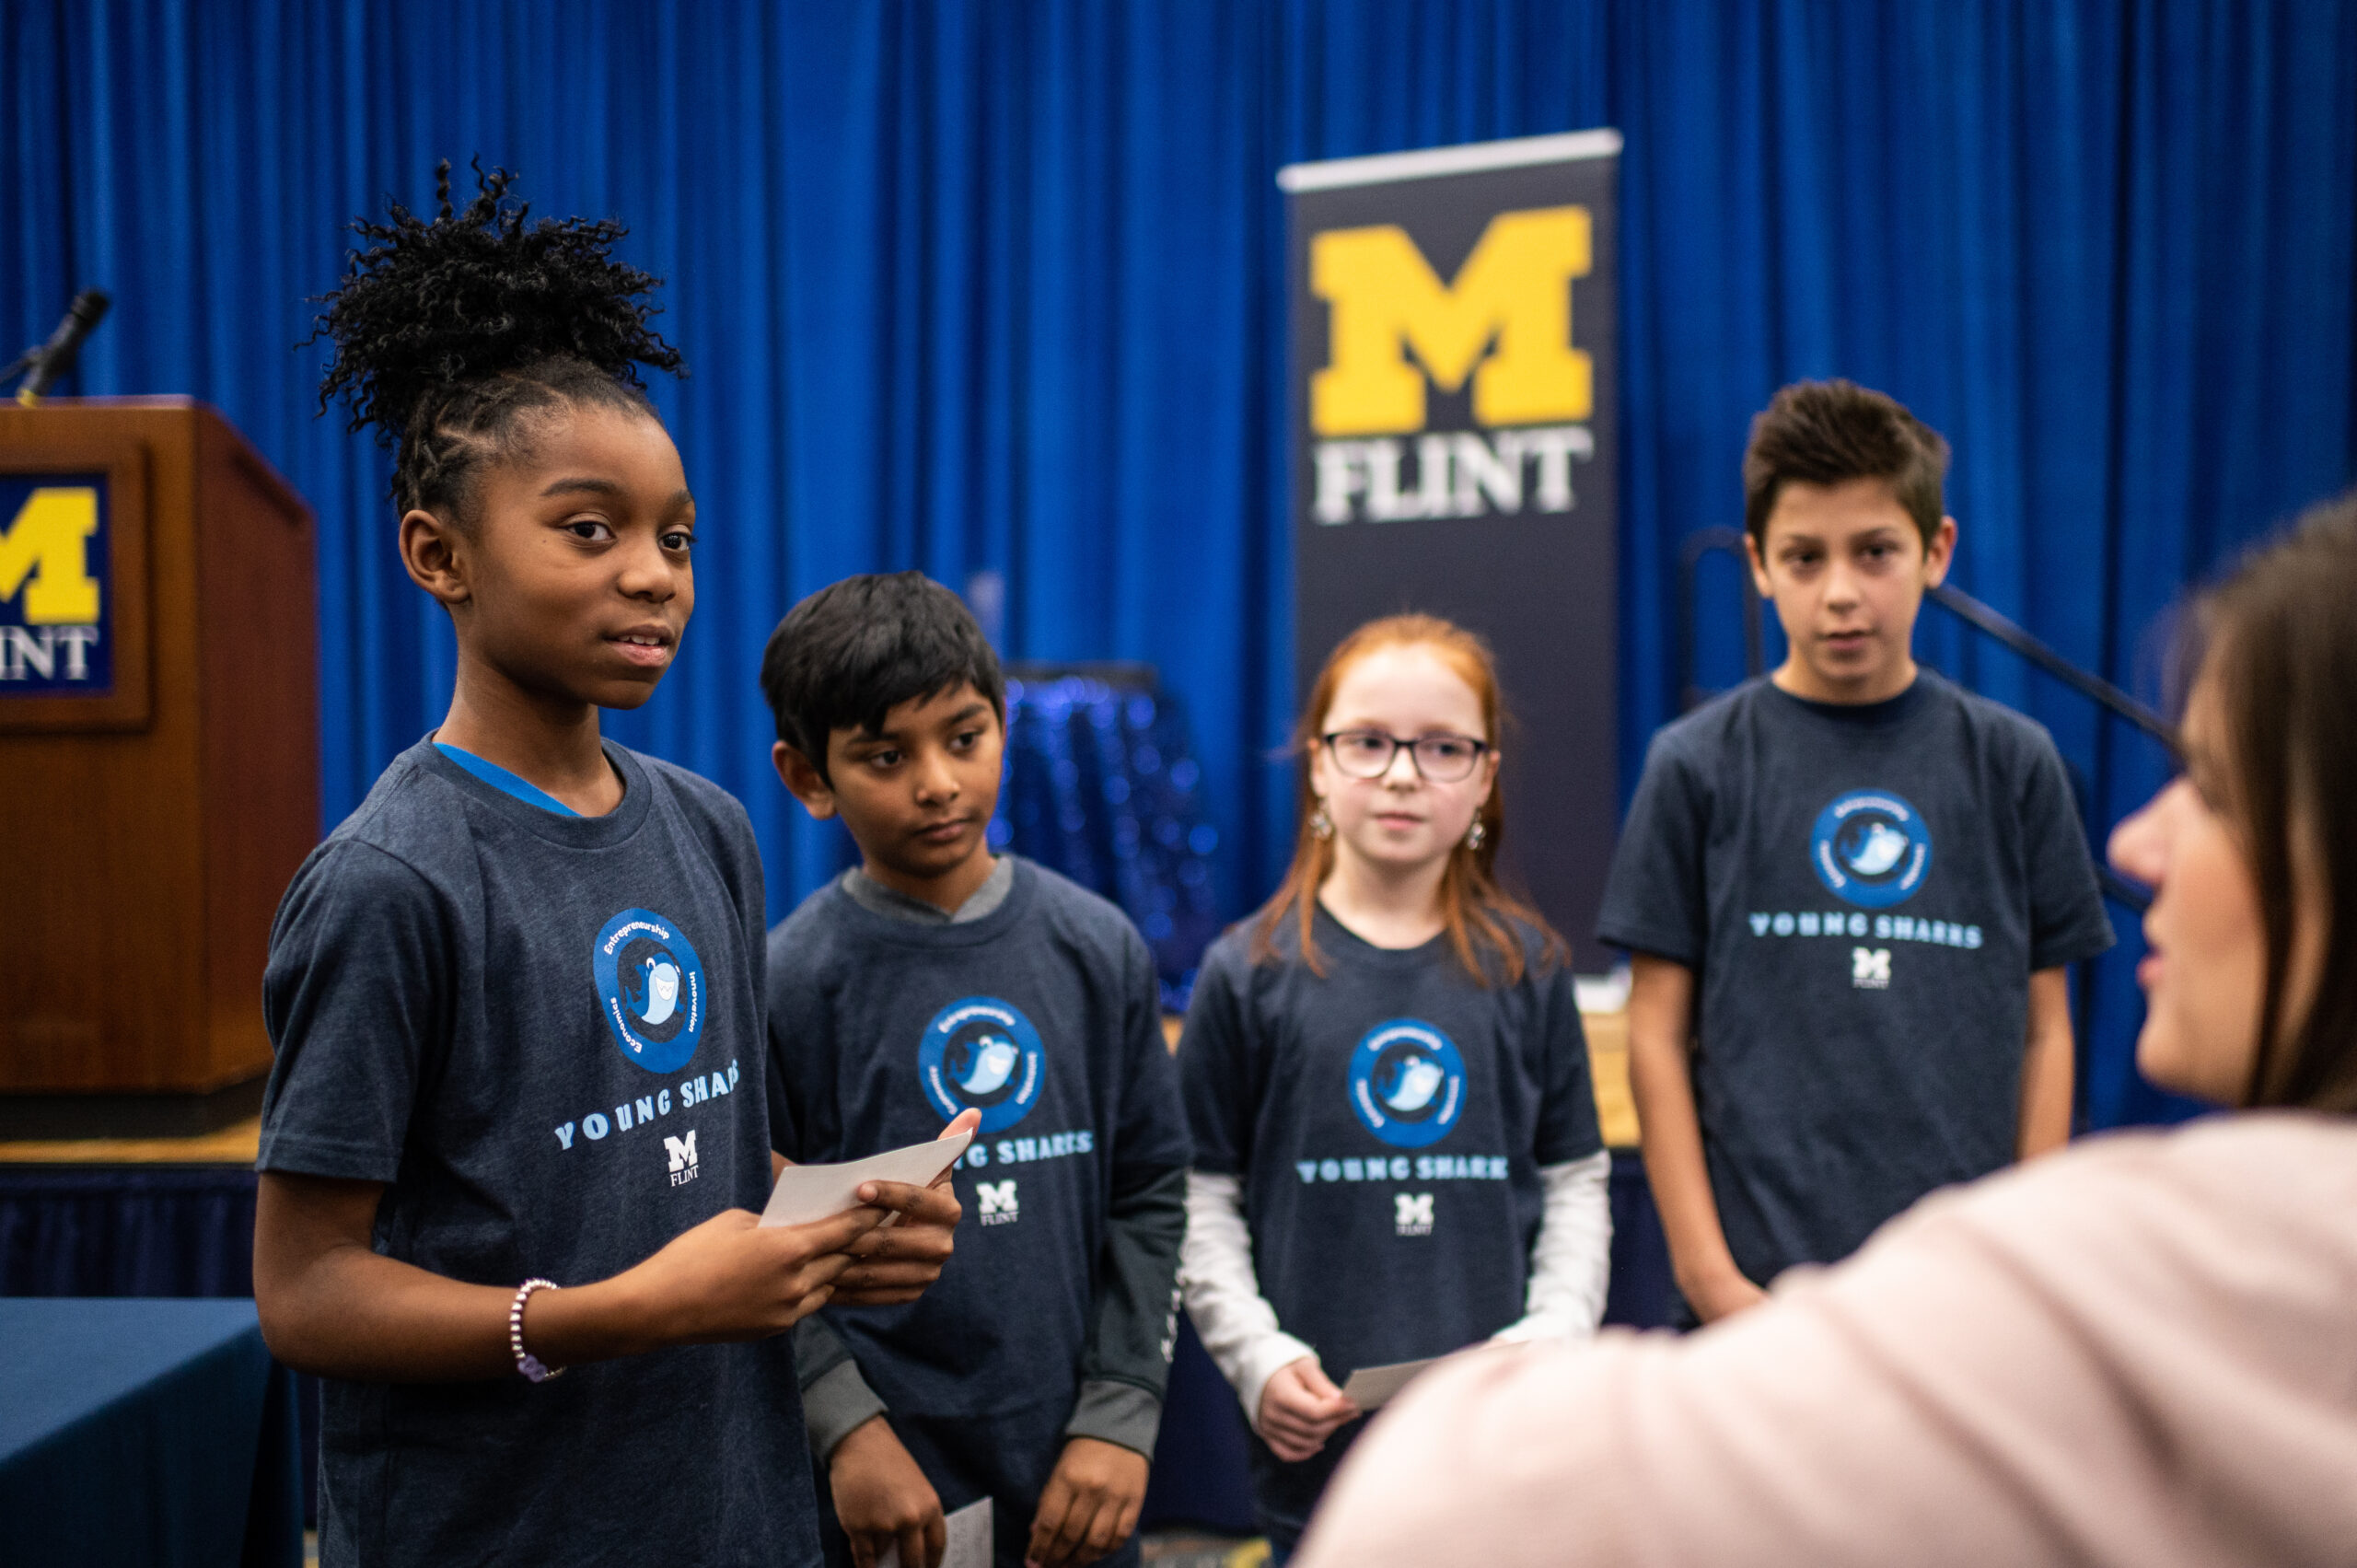 Students from Mason Elementary School of Grand Blanc Community Schools discuss their presentation strategy with their teacher during the presentation on 12/3/2019 at Riverfront Banquet Center on the UM-Flint campus. Image credit: Eric Bronson / Michigan Photography